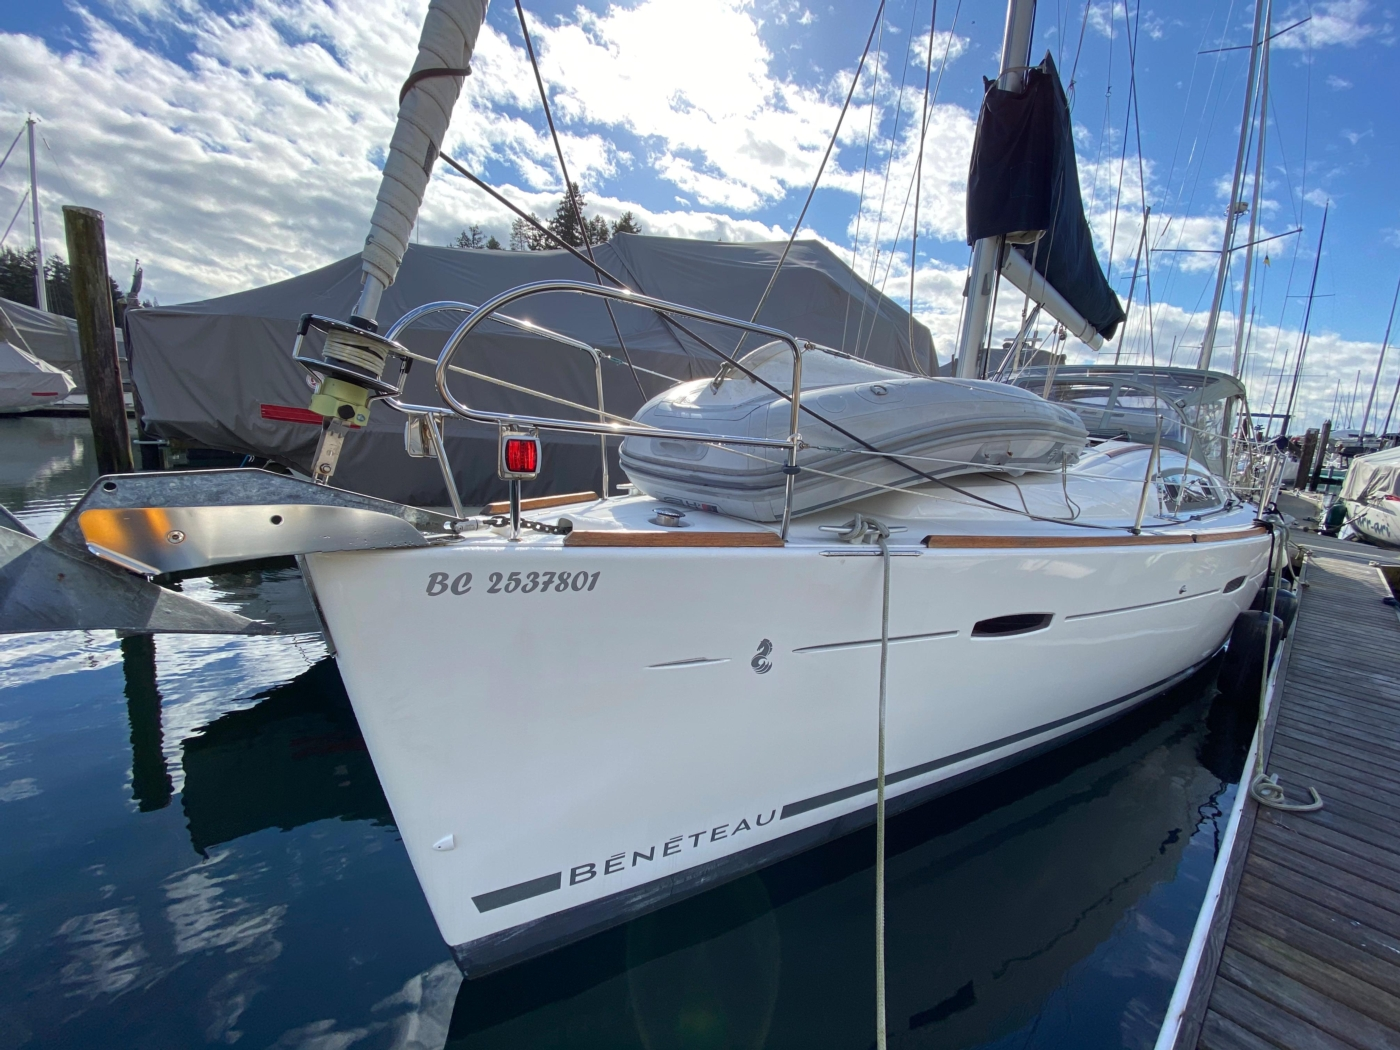 2010 Beneteau Oceanis 40, Forward Portside Profile